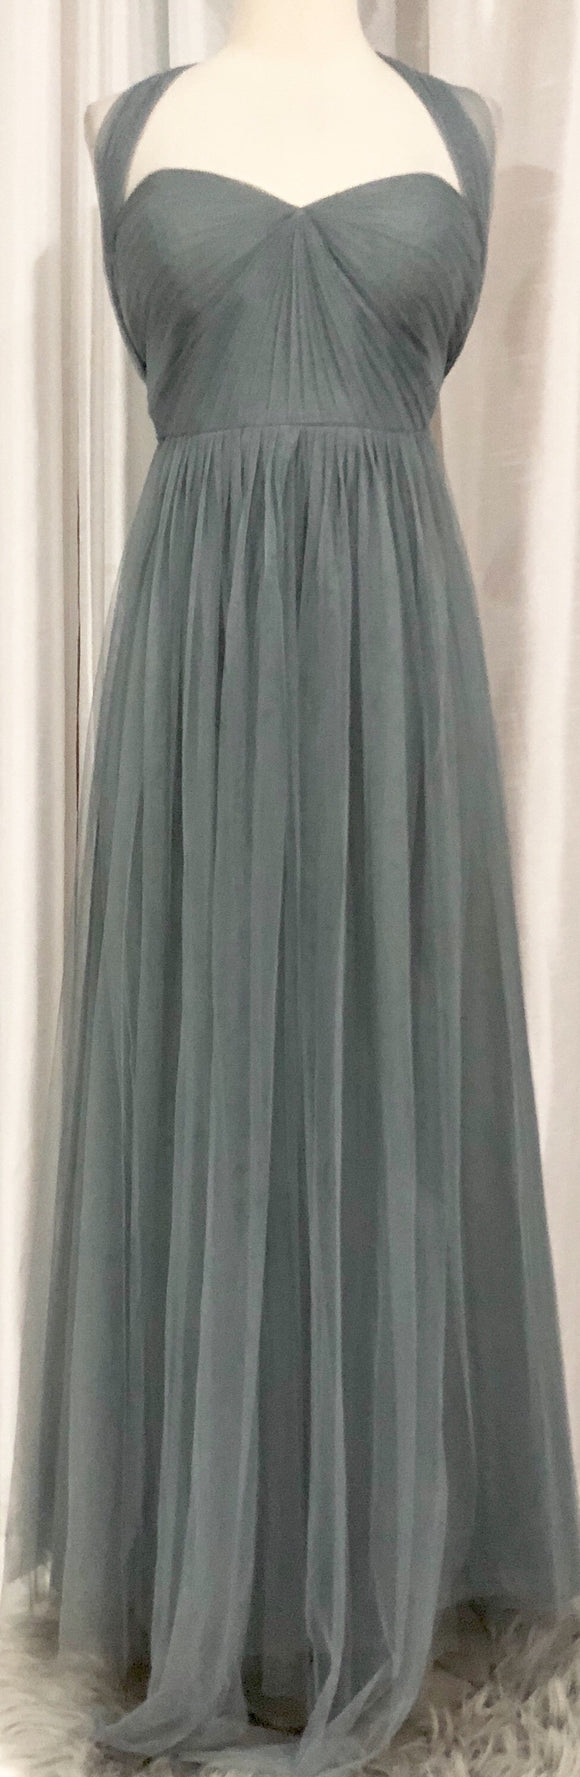 JENNY YOO COLLECTION Grey Long Soft Tulle Julia Gown Size 8